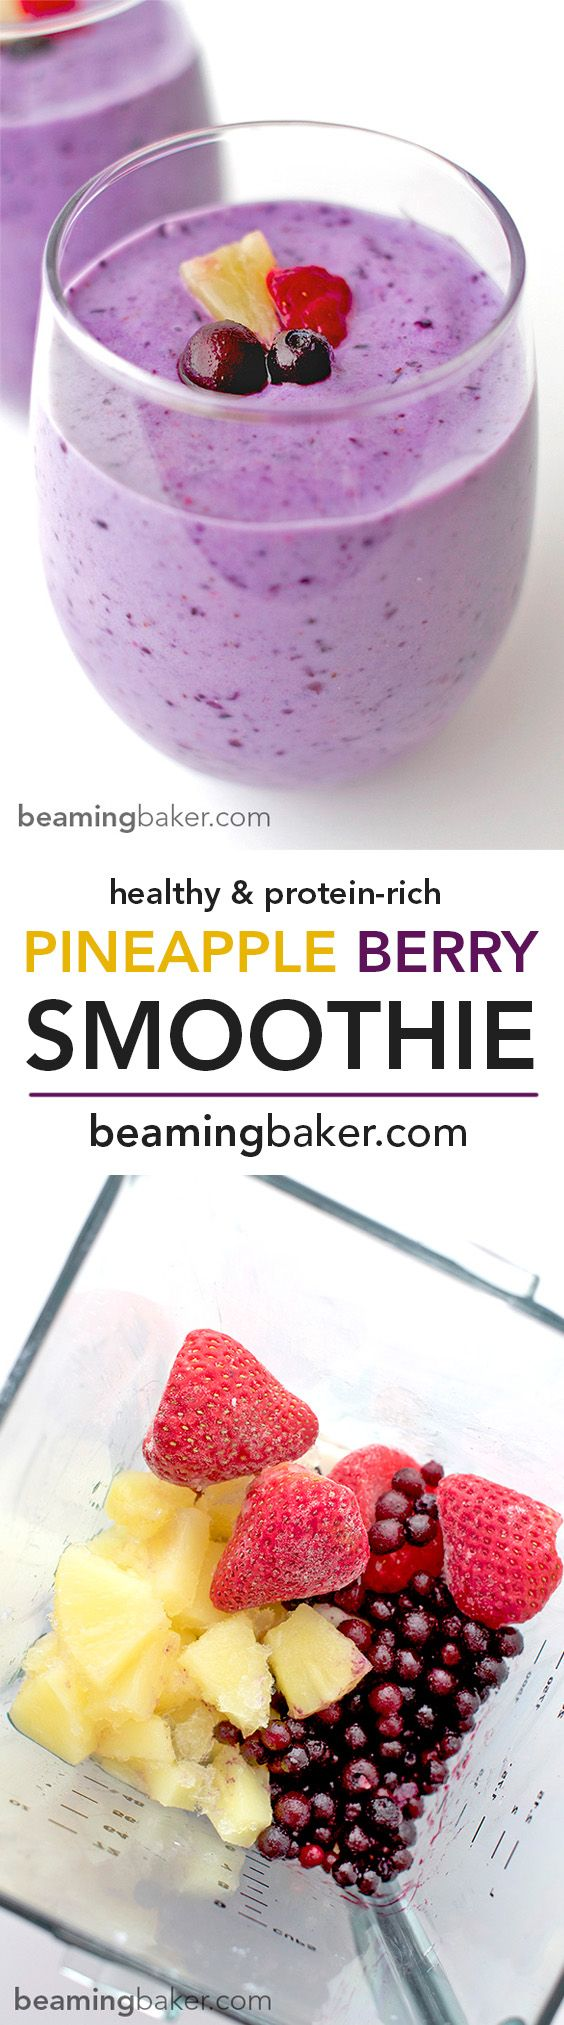 Refreshing, sweet, protein-packed Pineapple Berry Smoothies: made with Greek yogurt, strawberries, blueberries and almond milk, these smoothies are the perfect fruity boost. BEAMINGBAKER.COM #healthy #gymfuel #fruitsmoothie